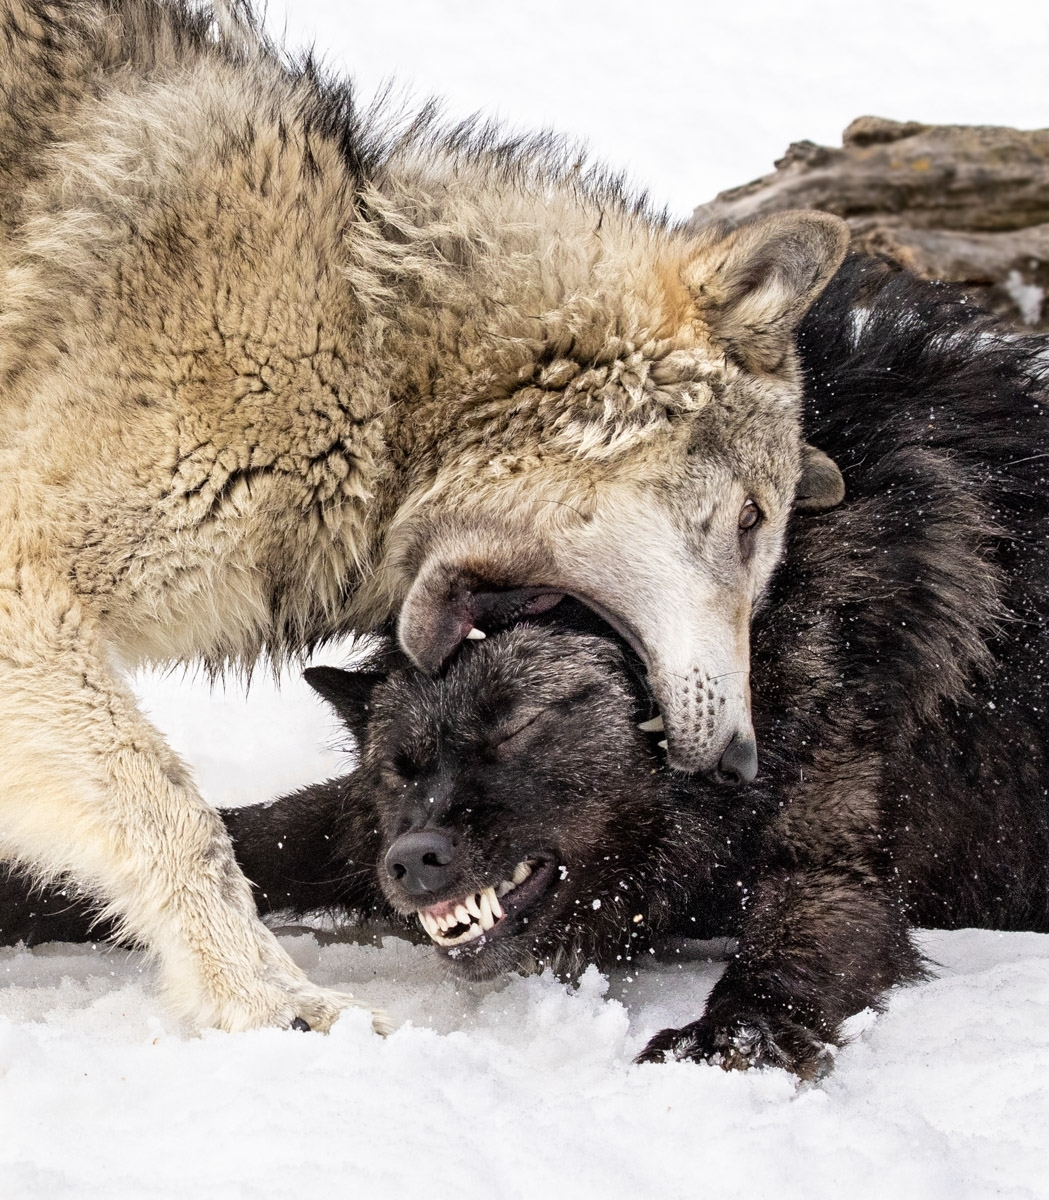 A-new-leader-of-the-Tundra-Wolf-Pack.-Wolves-constantly-fight-for-superiority.-3200981-NI-0-Place-by-Udo-Klein-CC